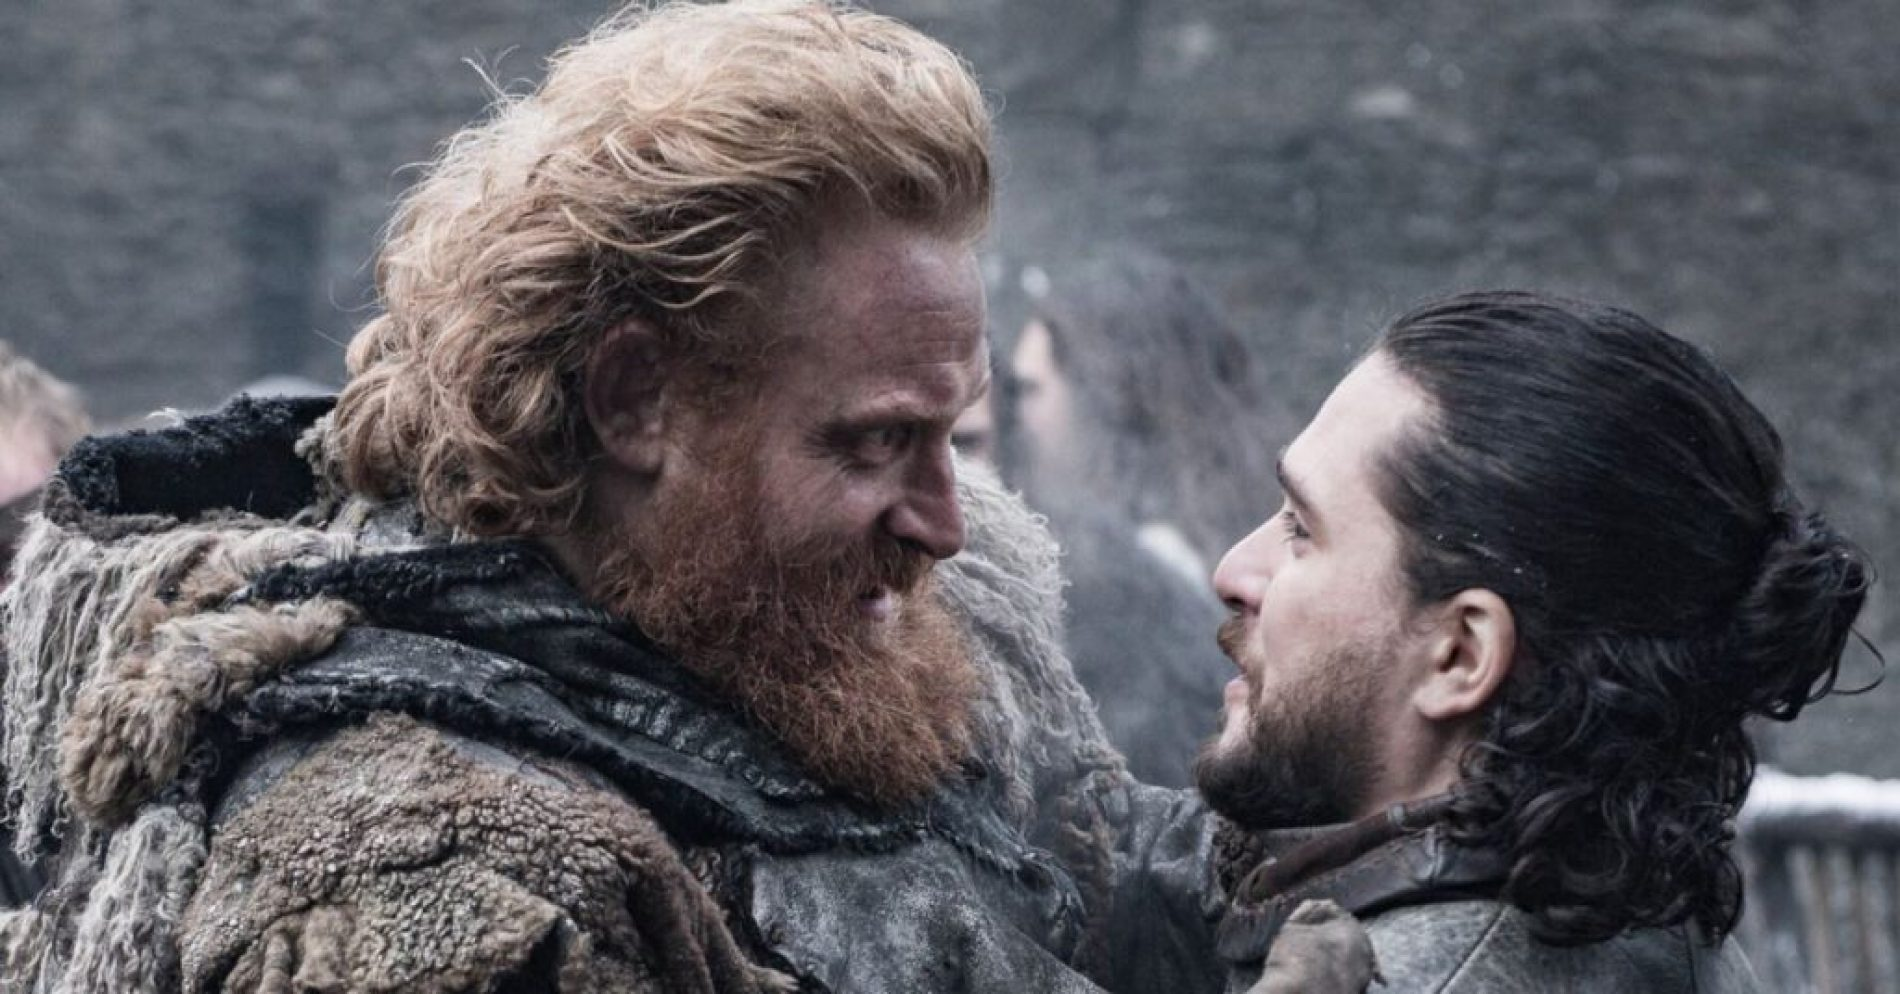 With Game Of Thrones now over, JK Rowling reveals that Jon Snow is gay